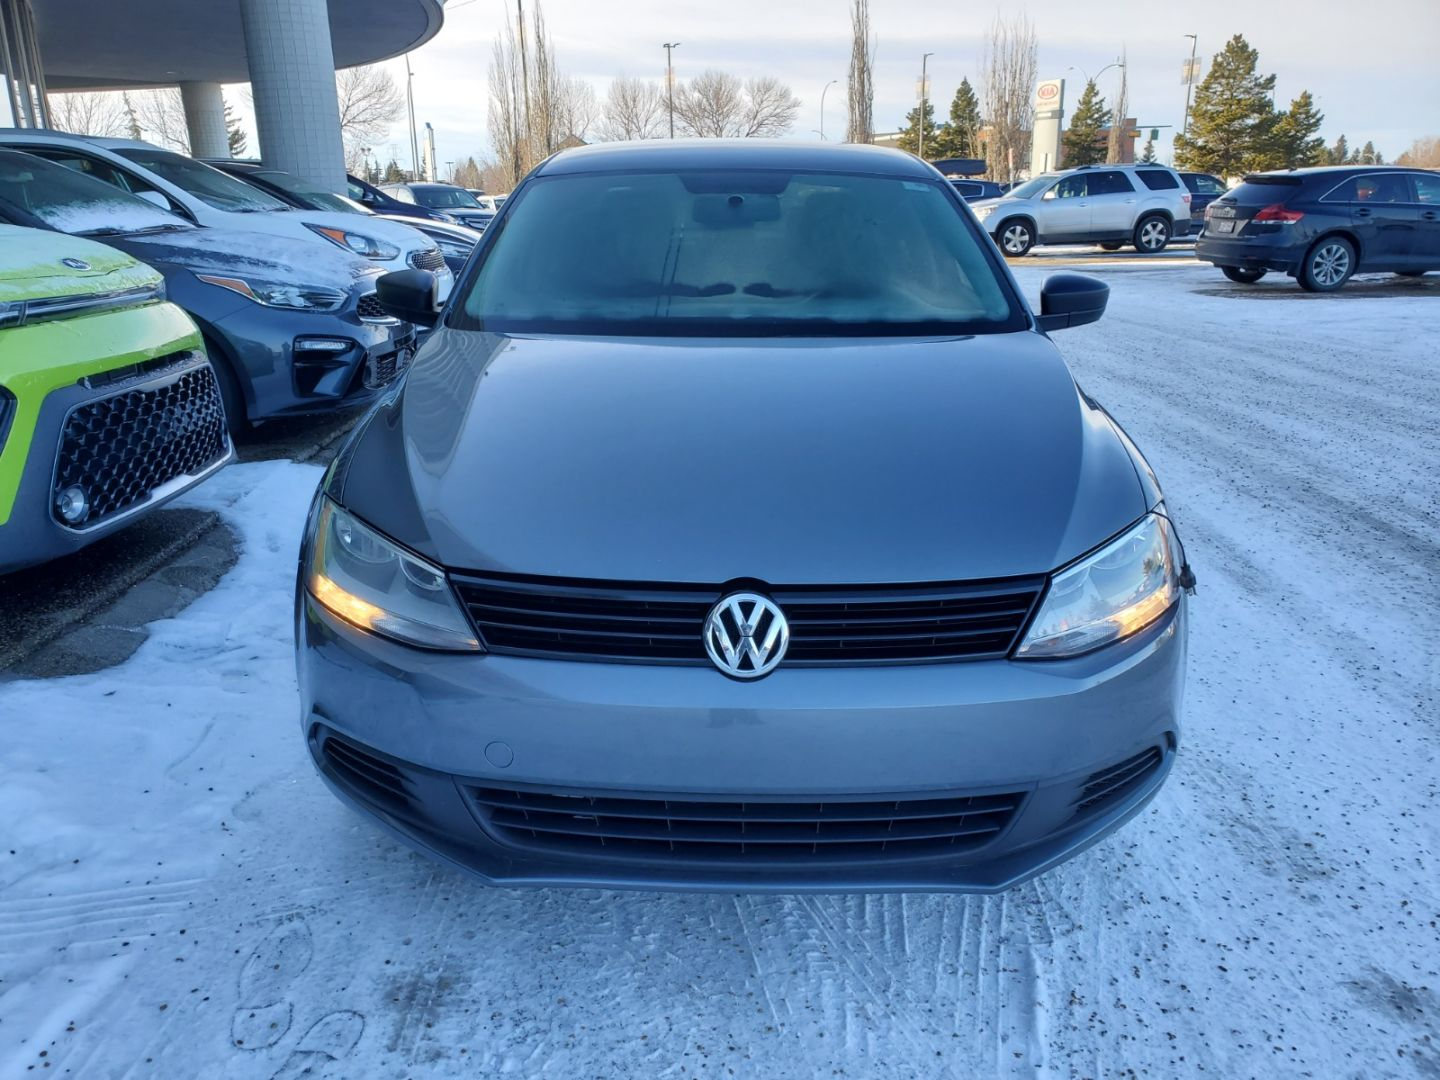 2013 Volkswagen Jetta Sedan Trendline+ for sale in Edmonton, Alberta